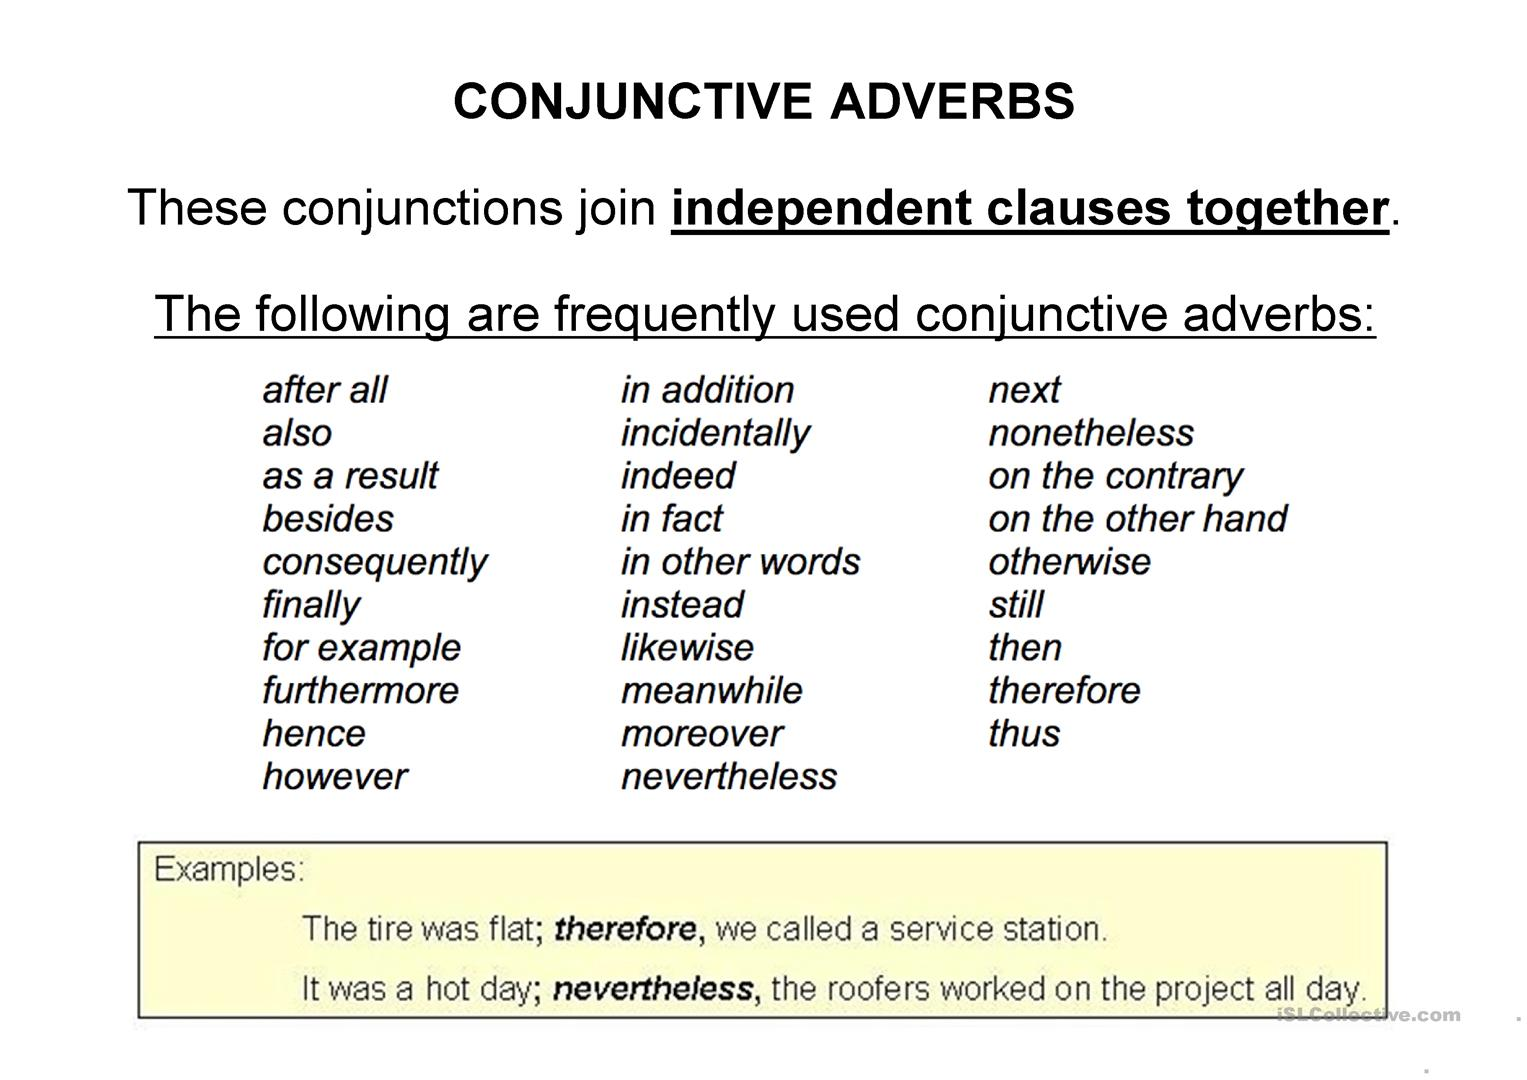 Uncategorized Conjunctions Worksheets coordinating conjunctions fanboys worksheet free esl projectable full screen